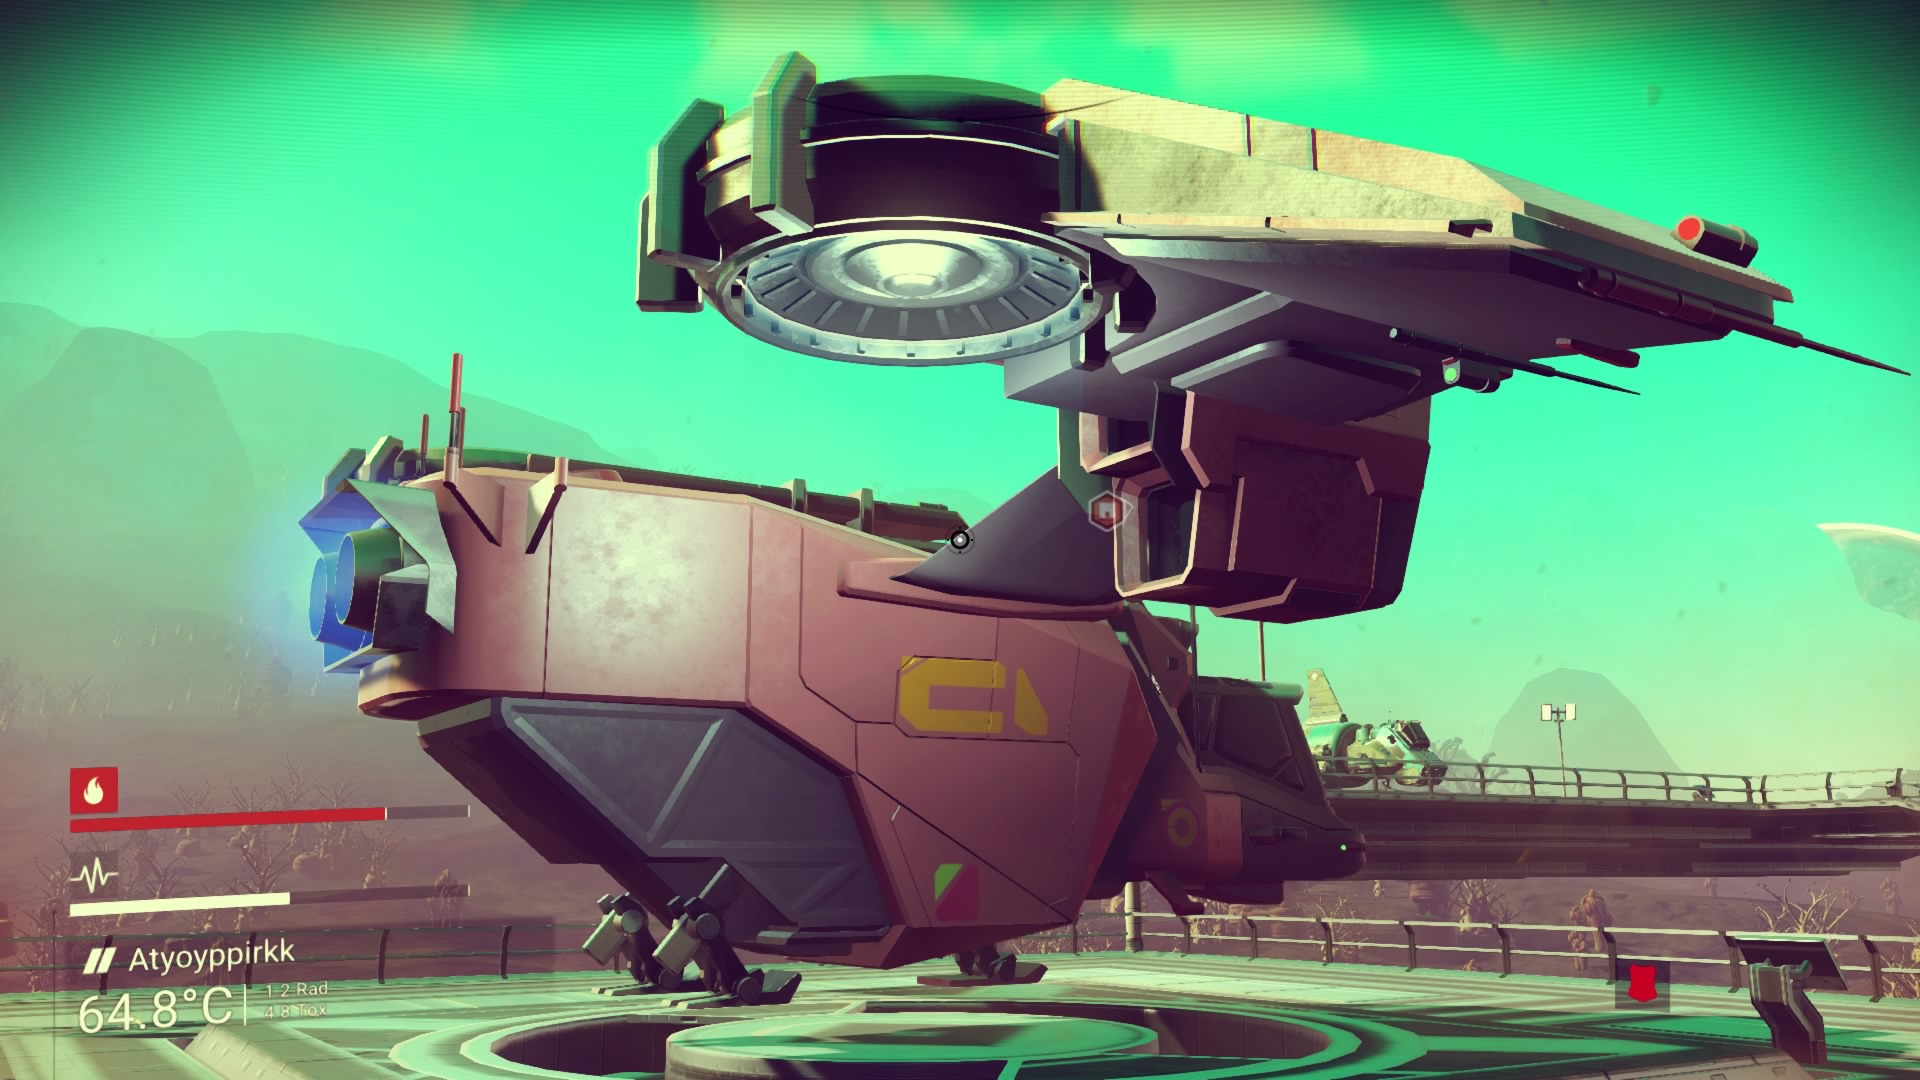 How to make money in No Man's Sky